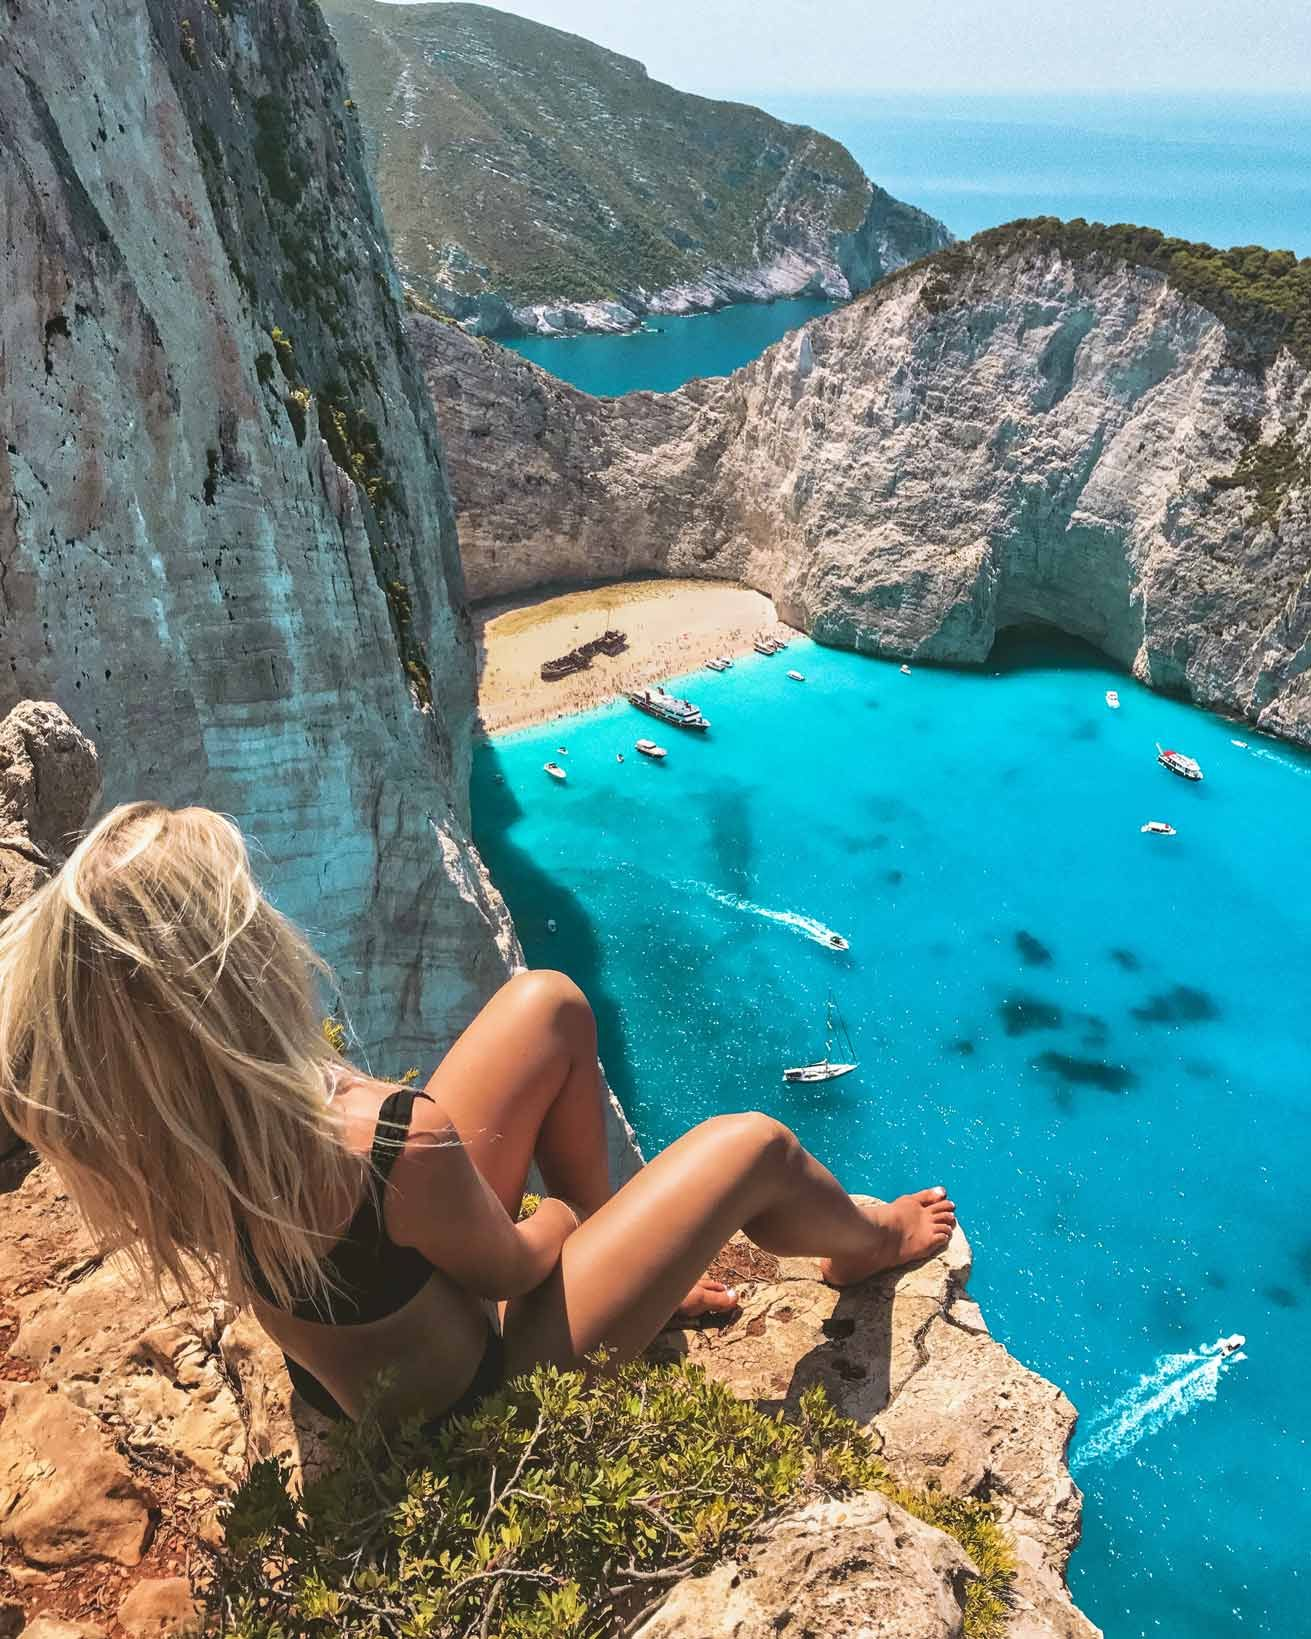 Navagio Aka Shipwreck Beach Is The Most Photographed Scene In All Of Greece And Truly Epitomizes The Beauty Beautiful Places To Travel Beach Visiting Greece